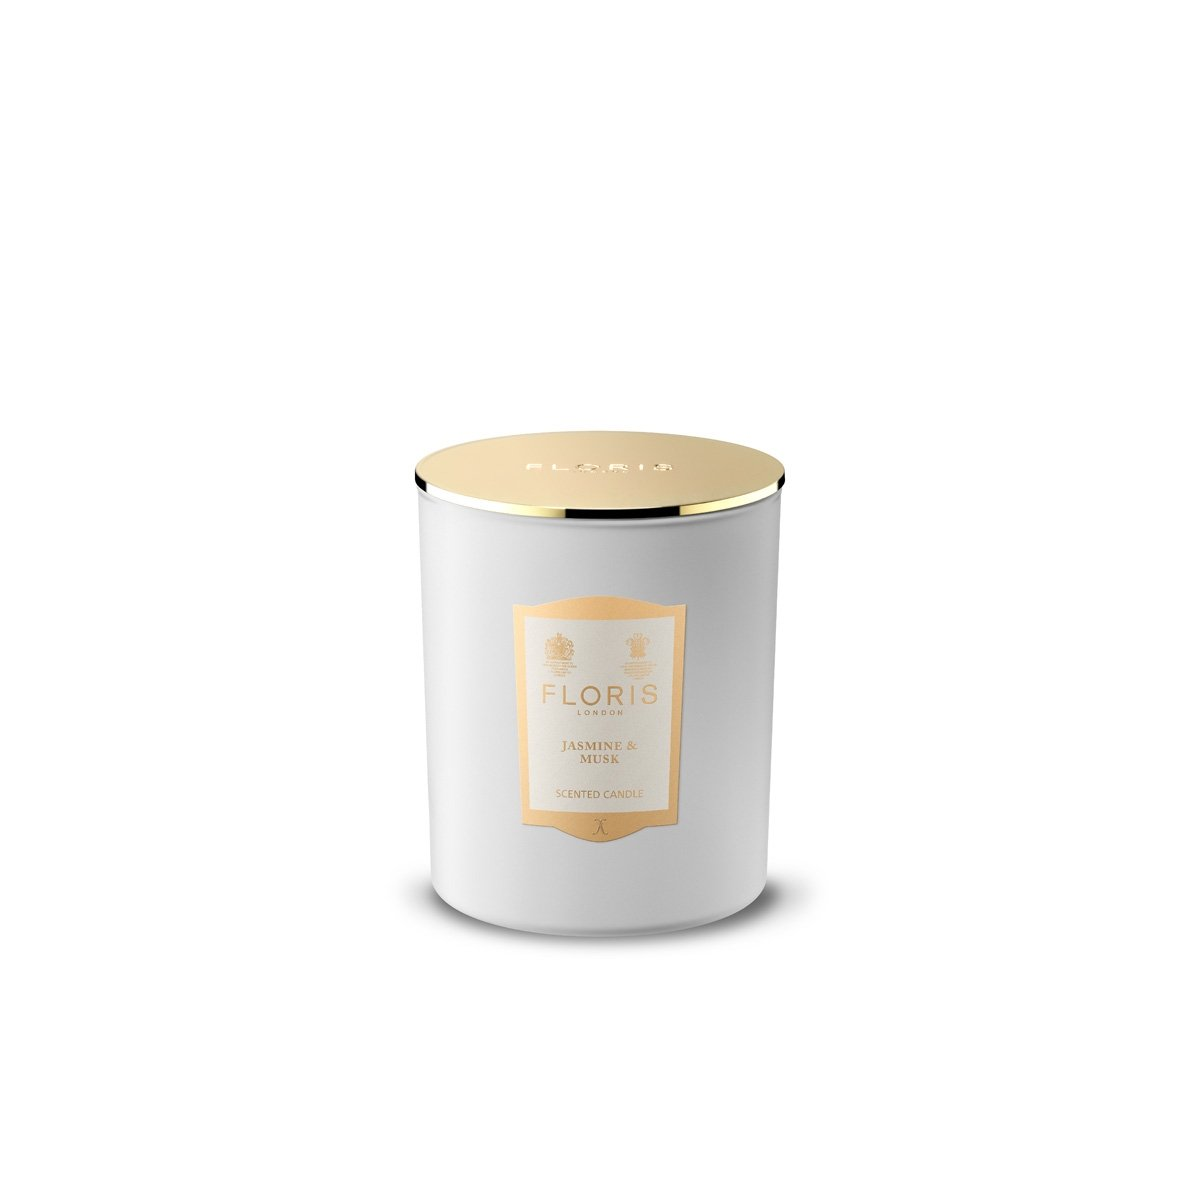 Jasmine & Musk - Scented Candle